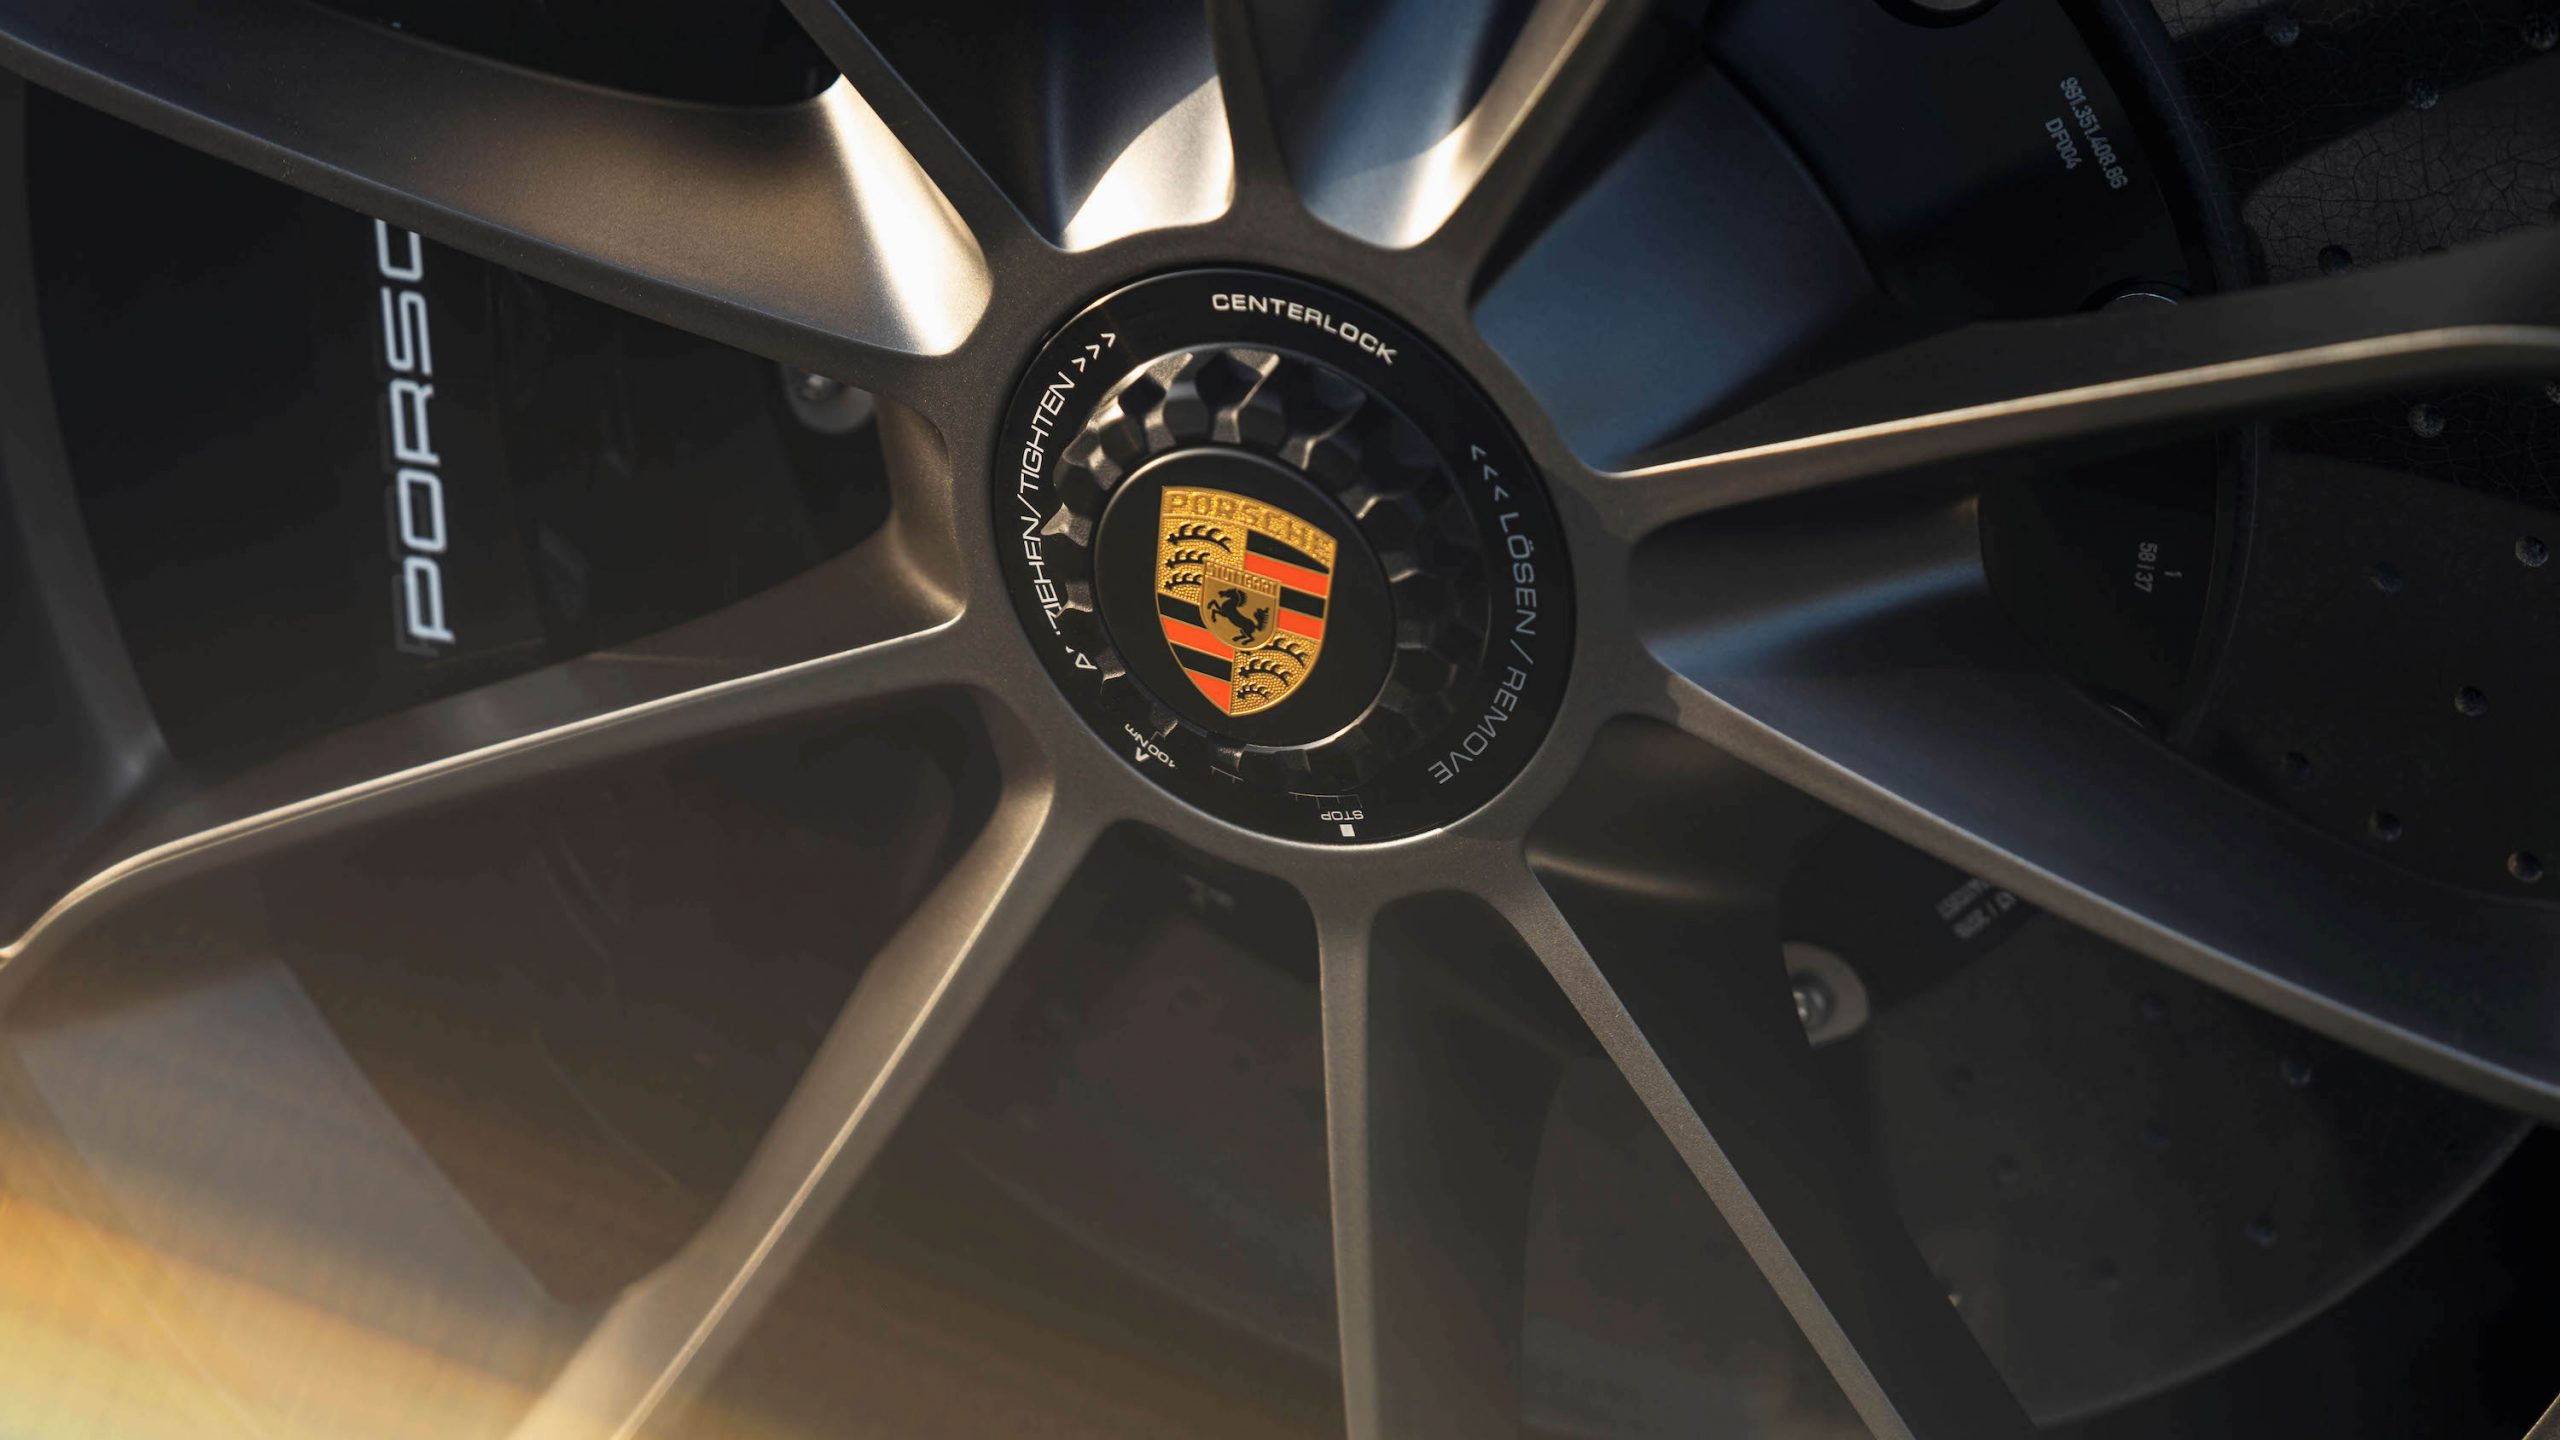 2019 Porsche 911 Speedster Heritage Design Wheel Hub